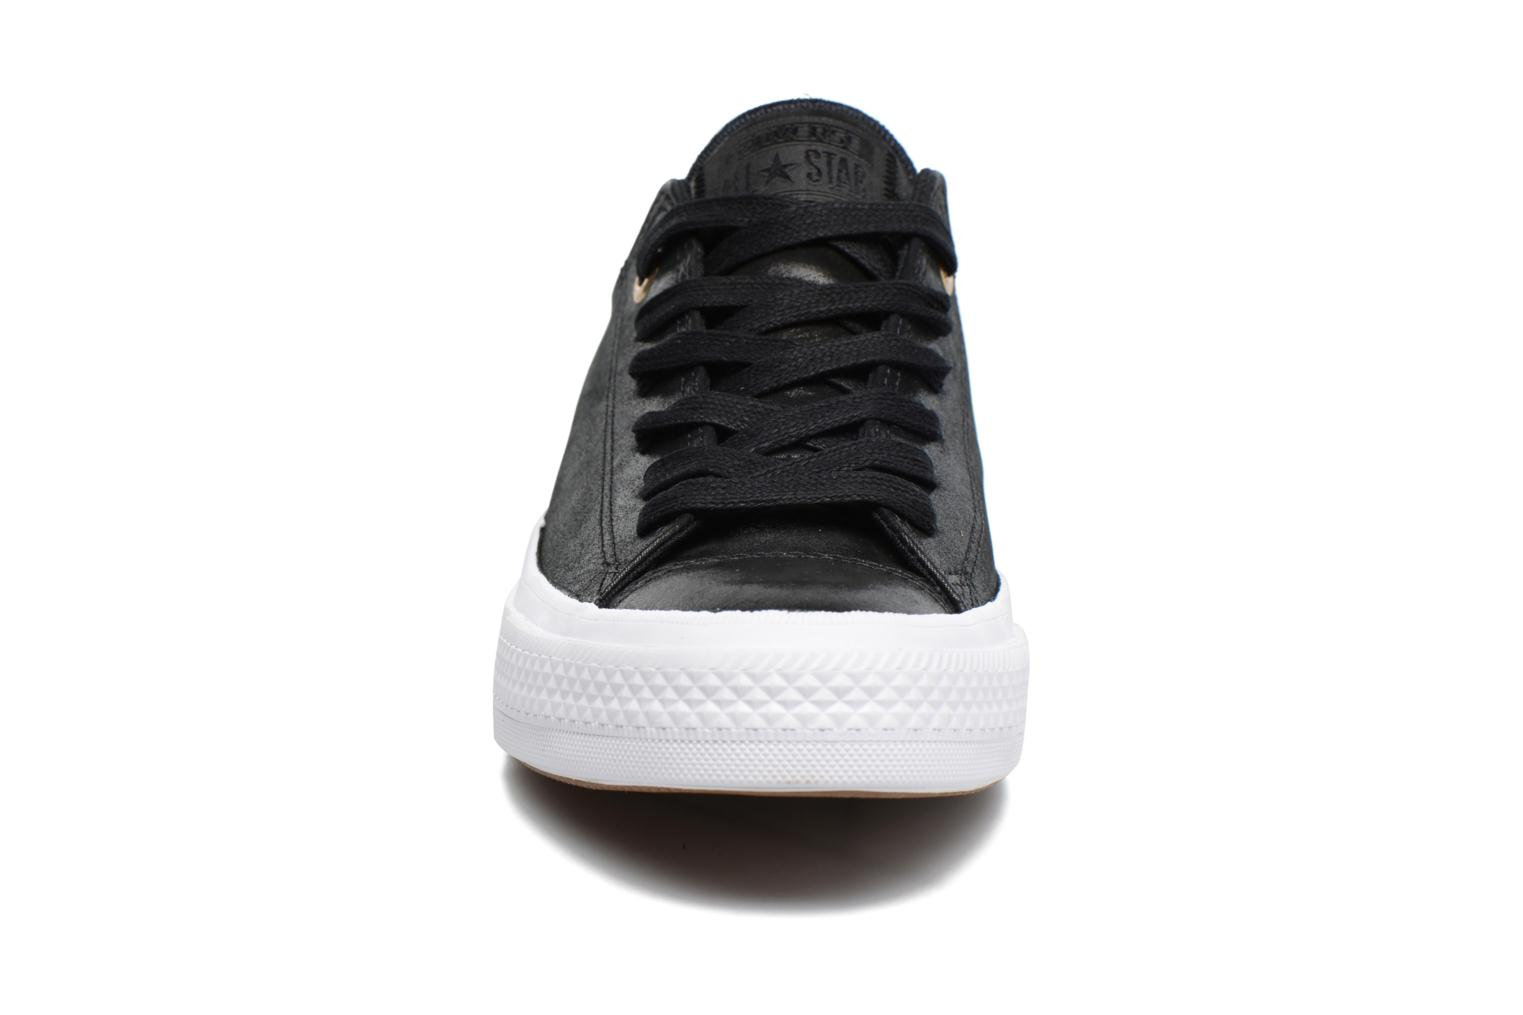 Chuck Taylor All Star II Ox Craft Leather Black/black/white